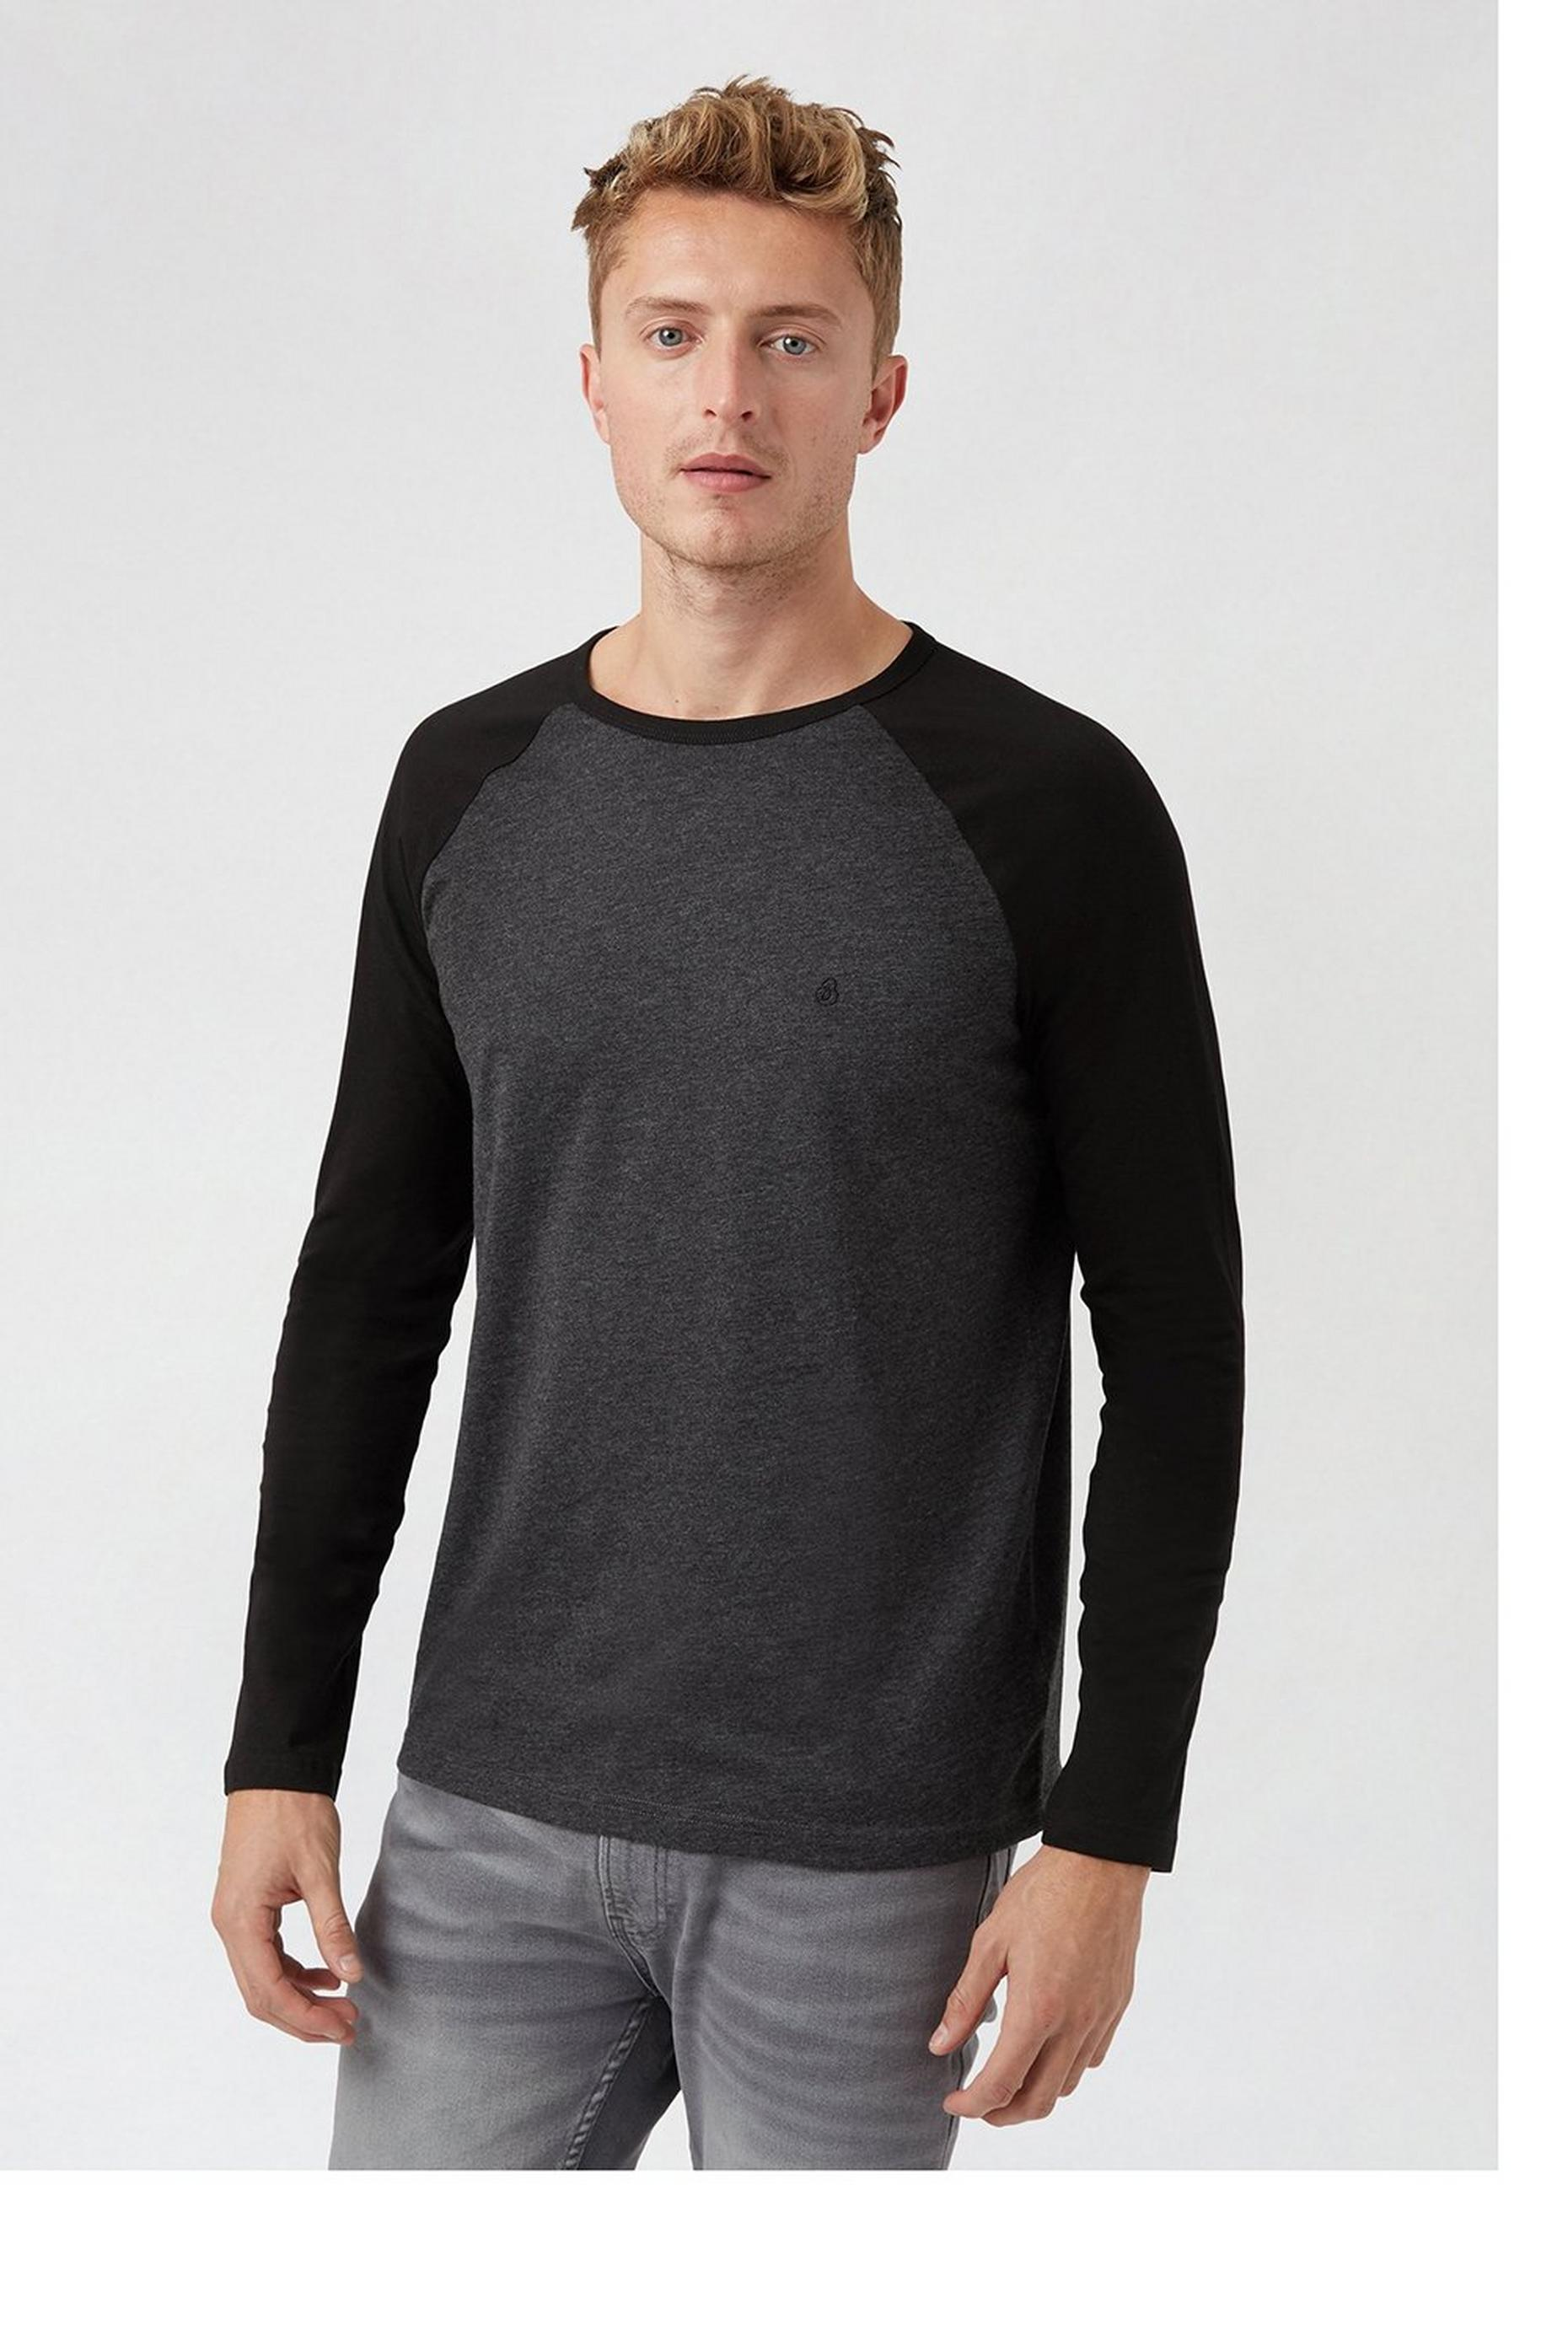 Black Marl Long Sleeve Organic Raglan